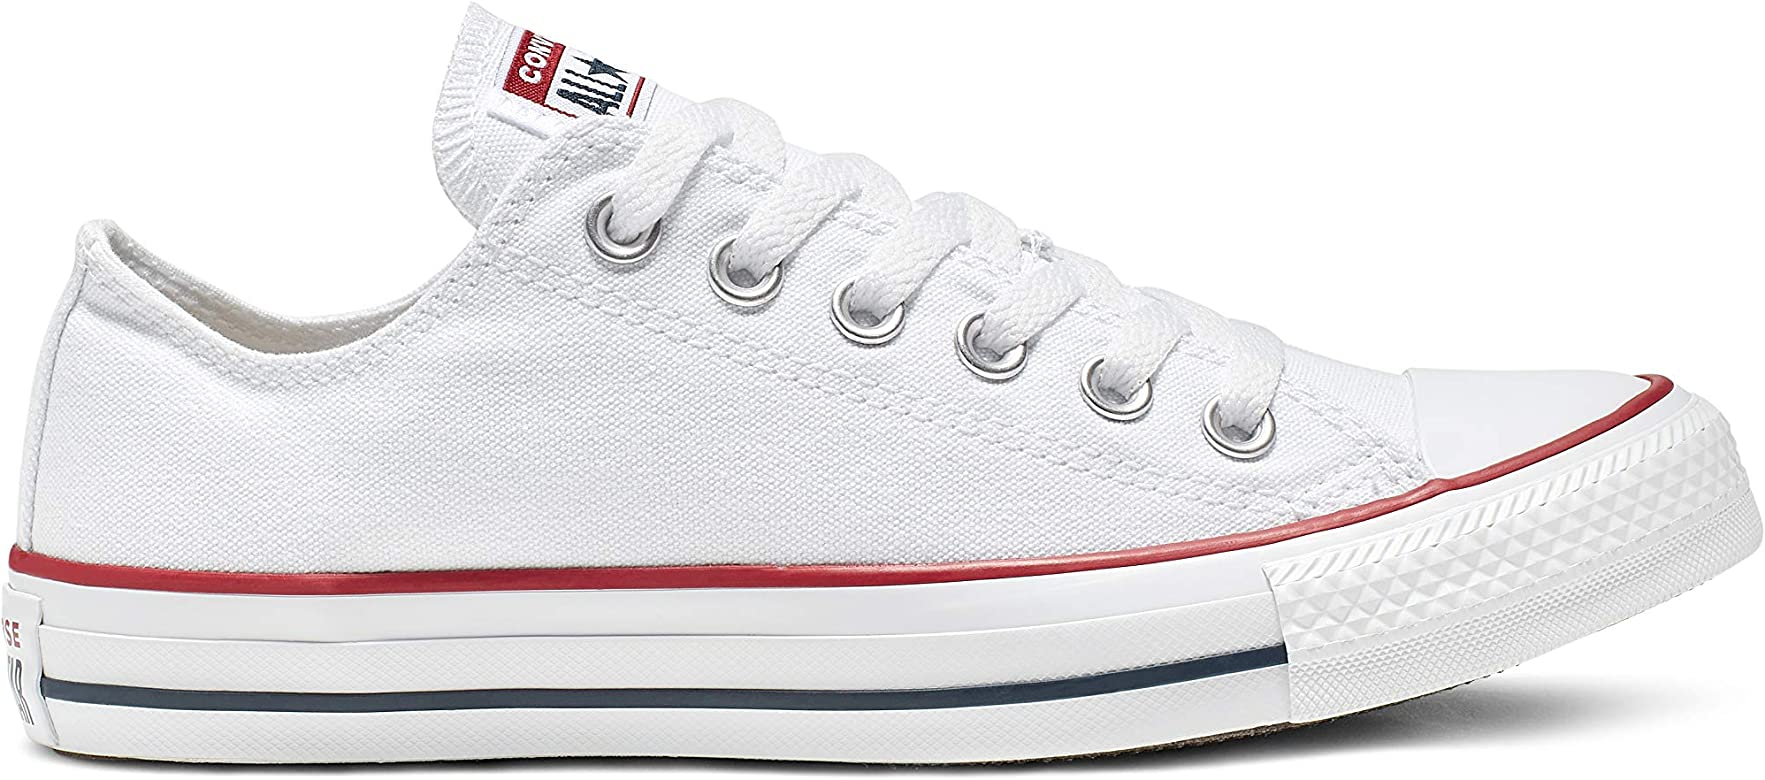 M US Women // 8.5 D M 10.5 B Converse Unisex Chuck Taylor All Star Ox US Men, Optical White